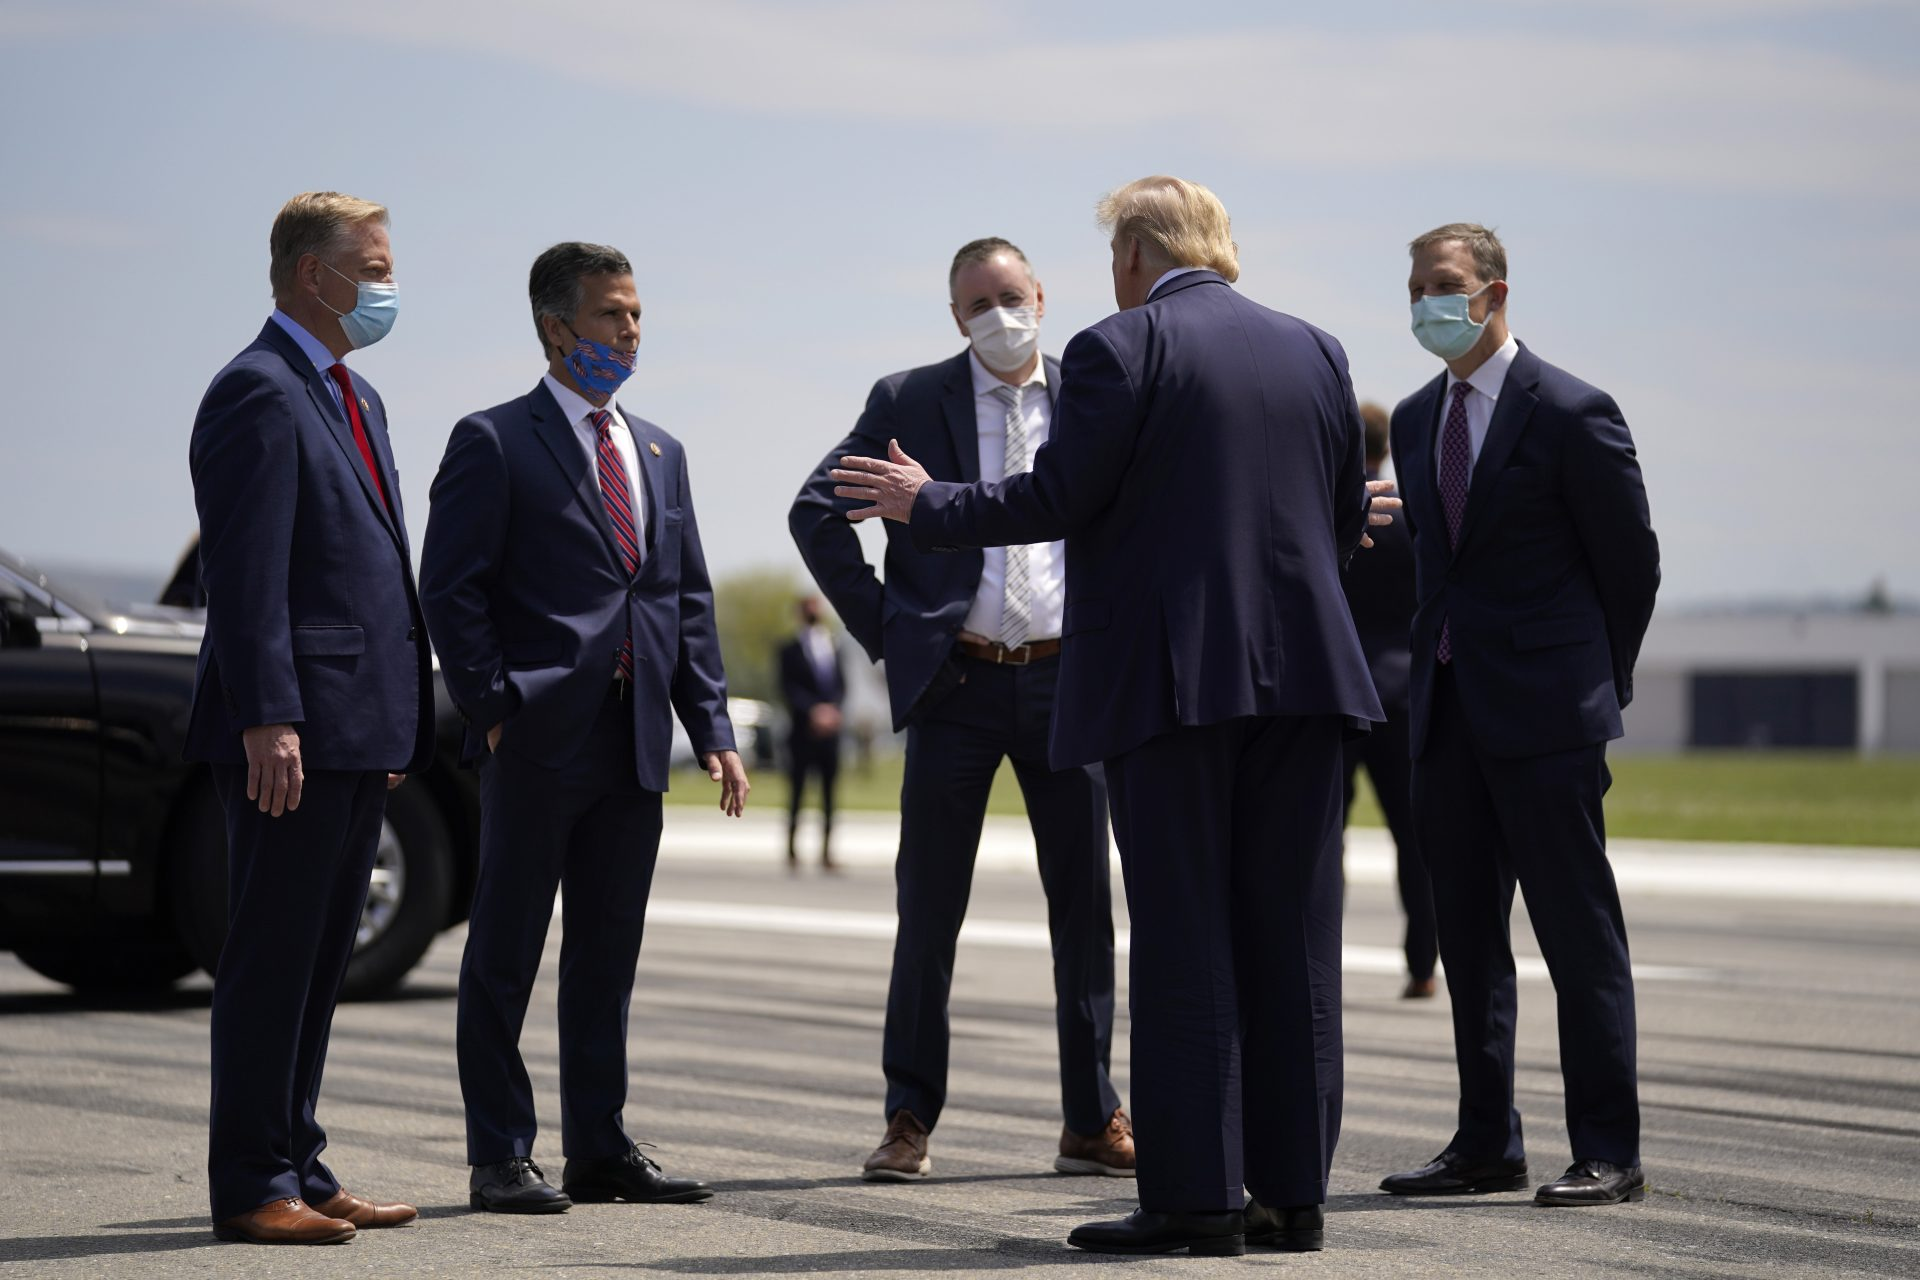 FILE PHOTO: President Donald Trump, second from right, speaks with from left, Rep. Fred Keller, Rep. Dan Meuser, Rep. Brian Fitzpatrick, Rep. Scott Perry after arriving at Lehigh Valley International Airport in Allentown, Pa., Thursday, May 14, 2020.